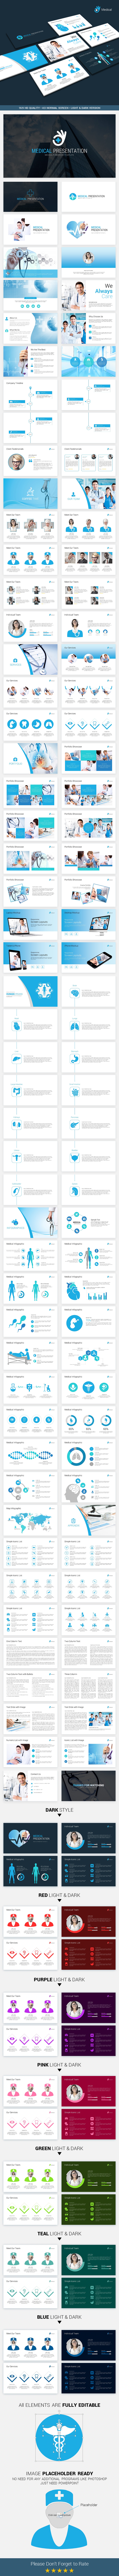 Medical PowerPoint Template - Creative PowerPoint Templates